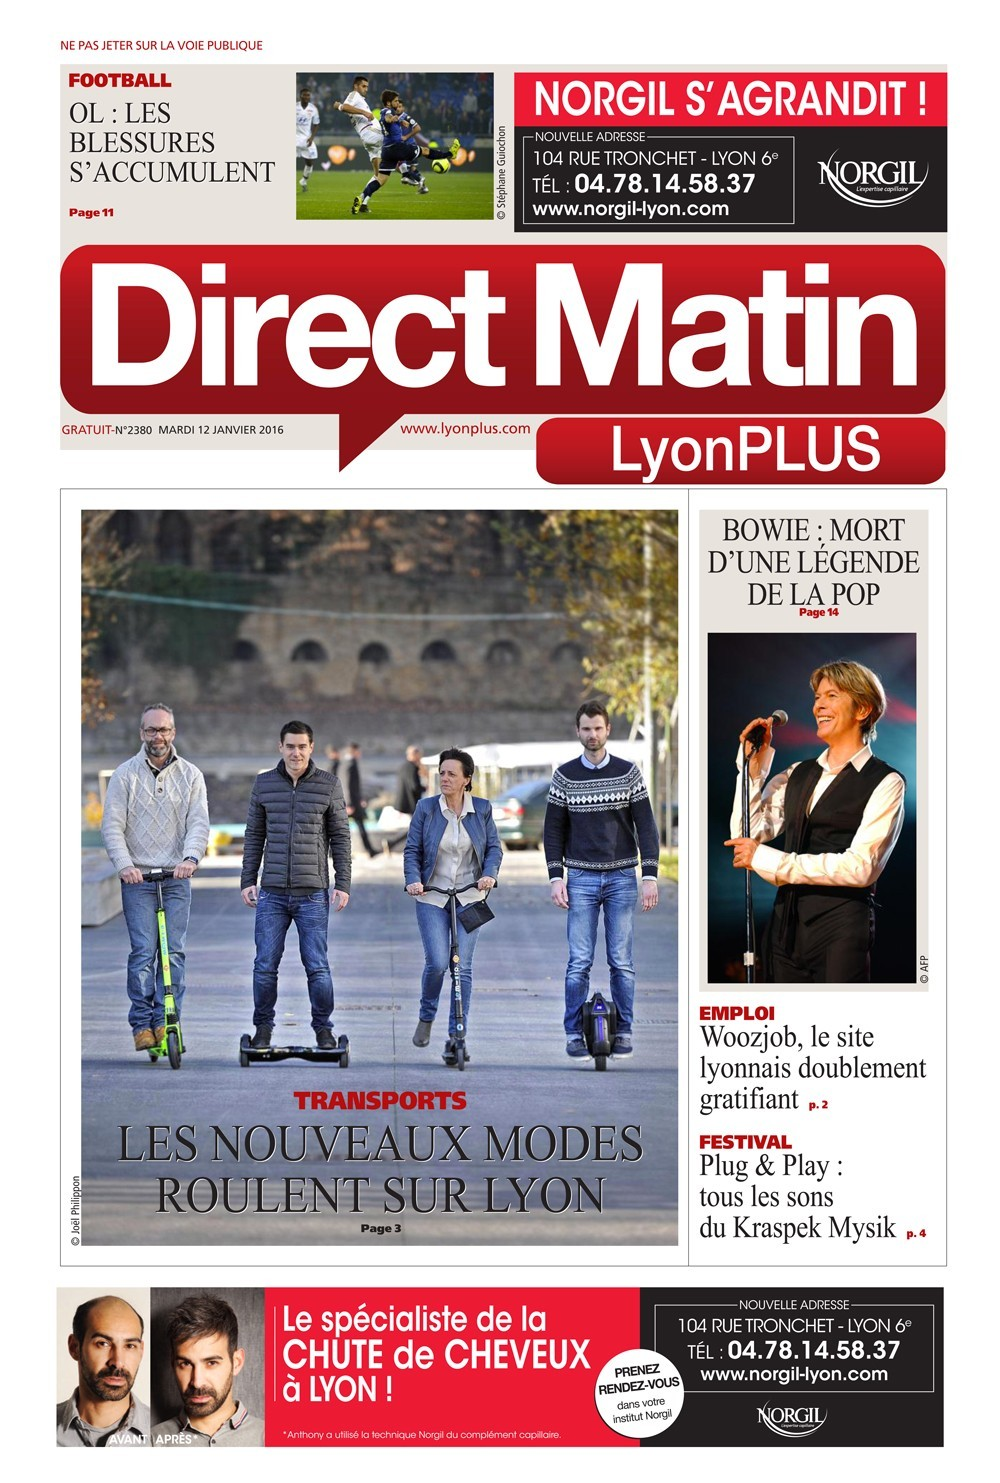 Couverture Direct Matin Lyon Plus - BEEPER Road